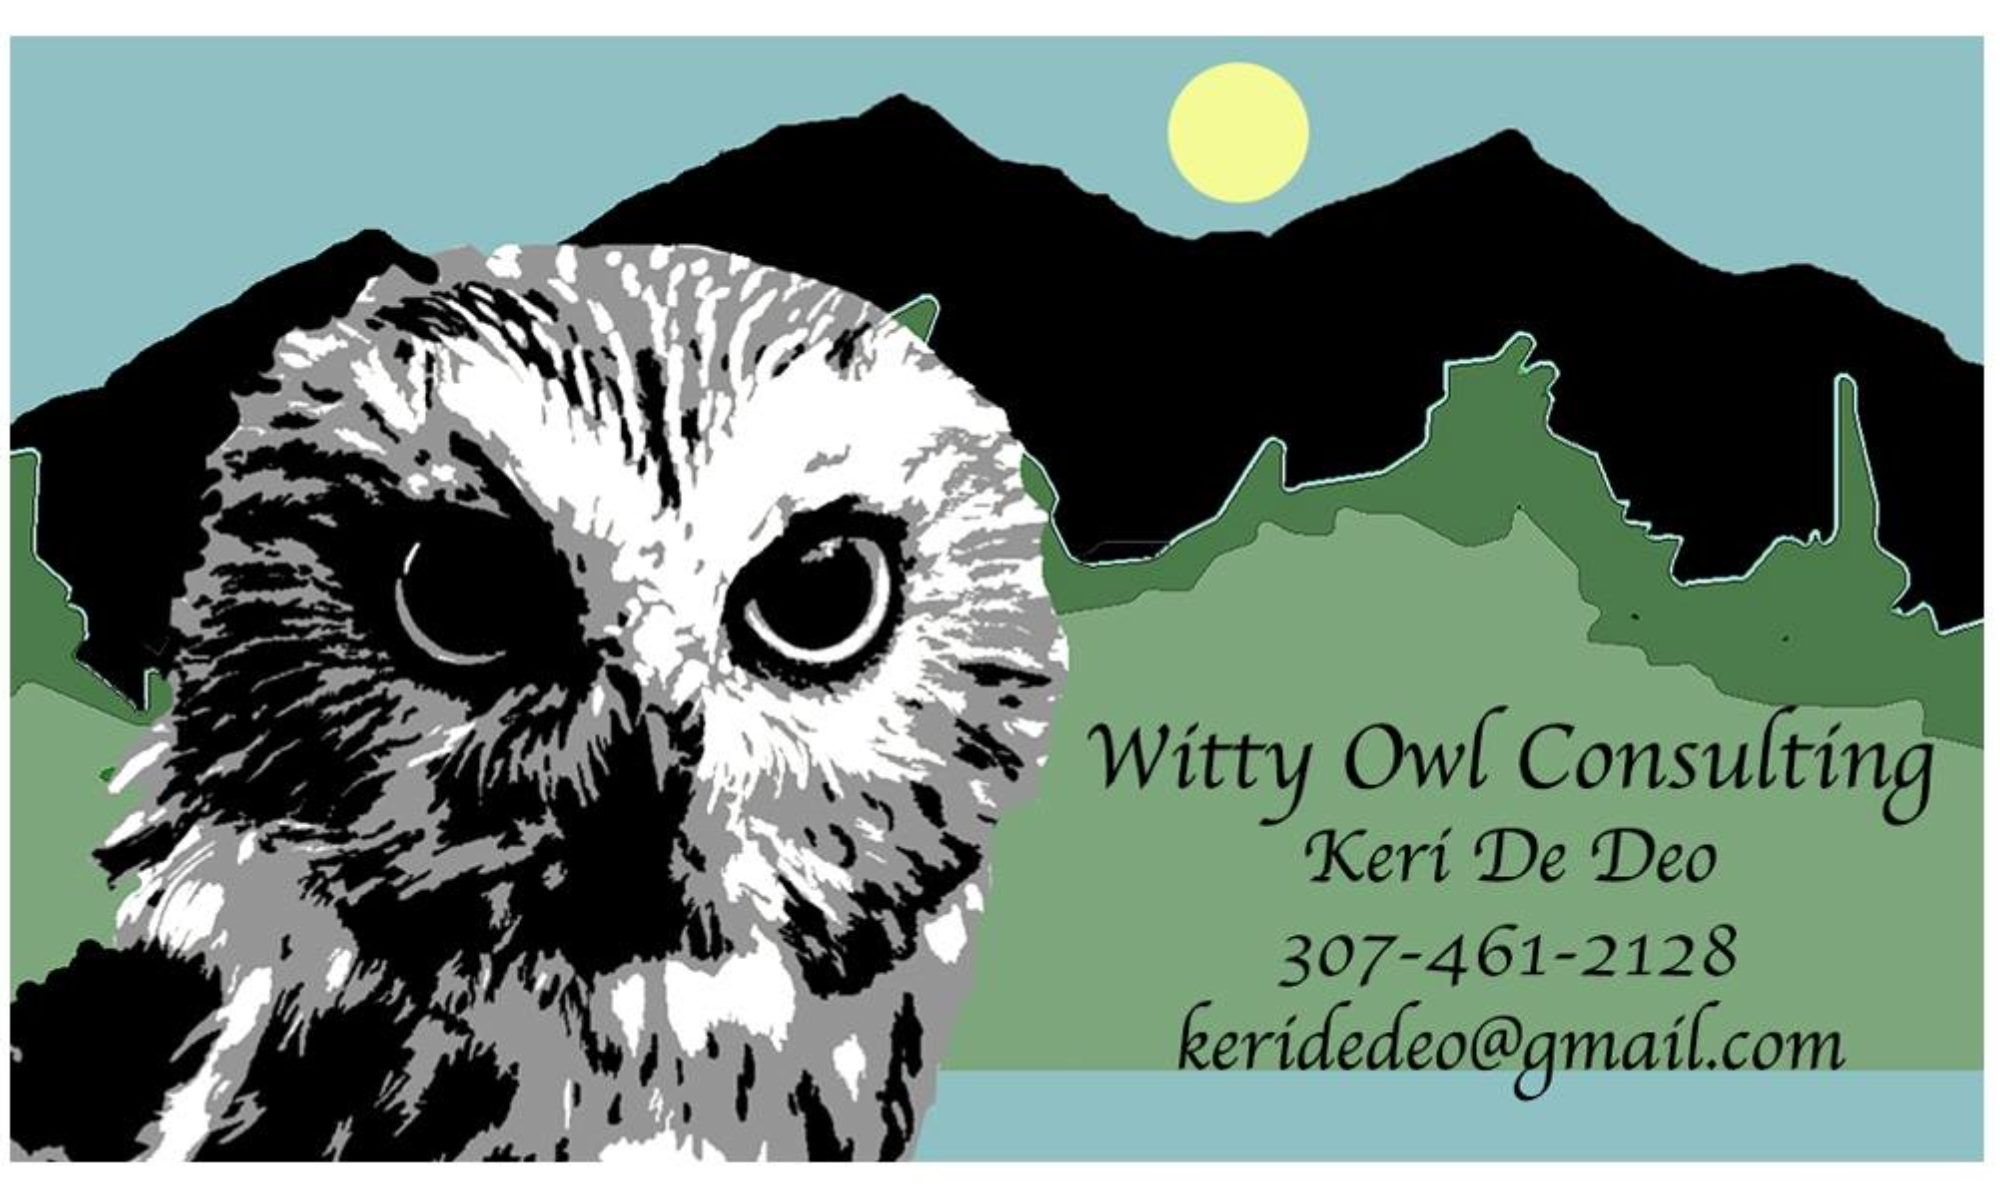 Witty Owl Consulting